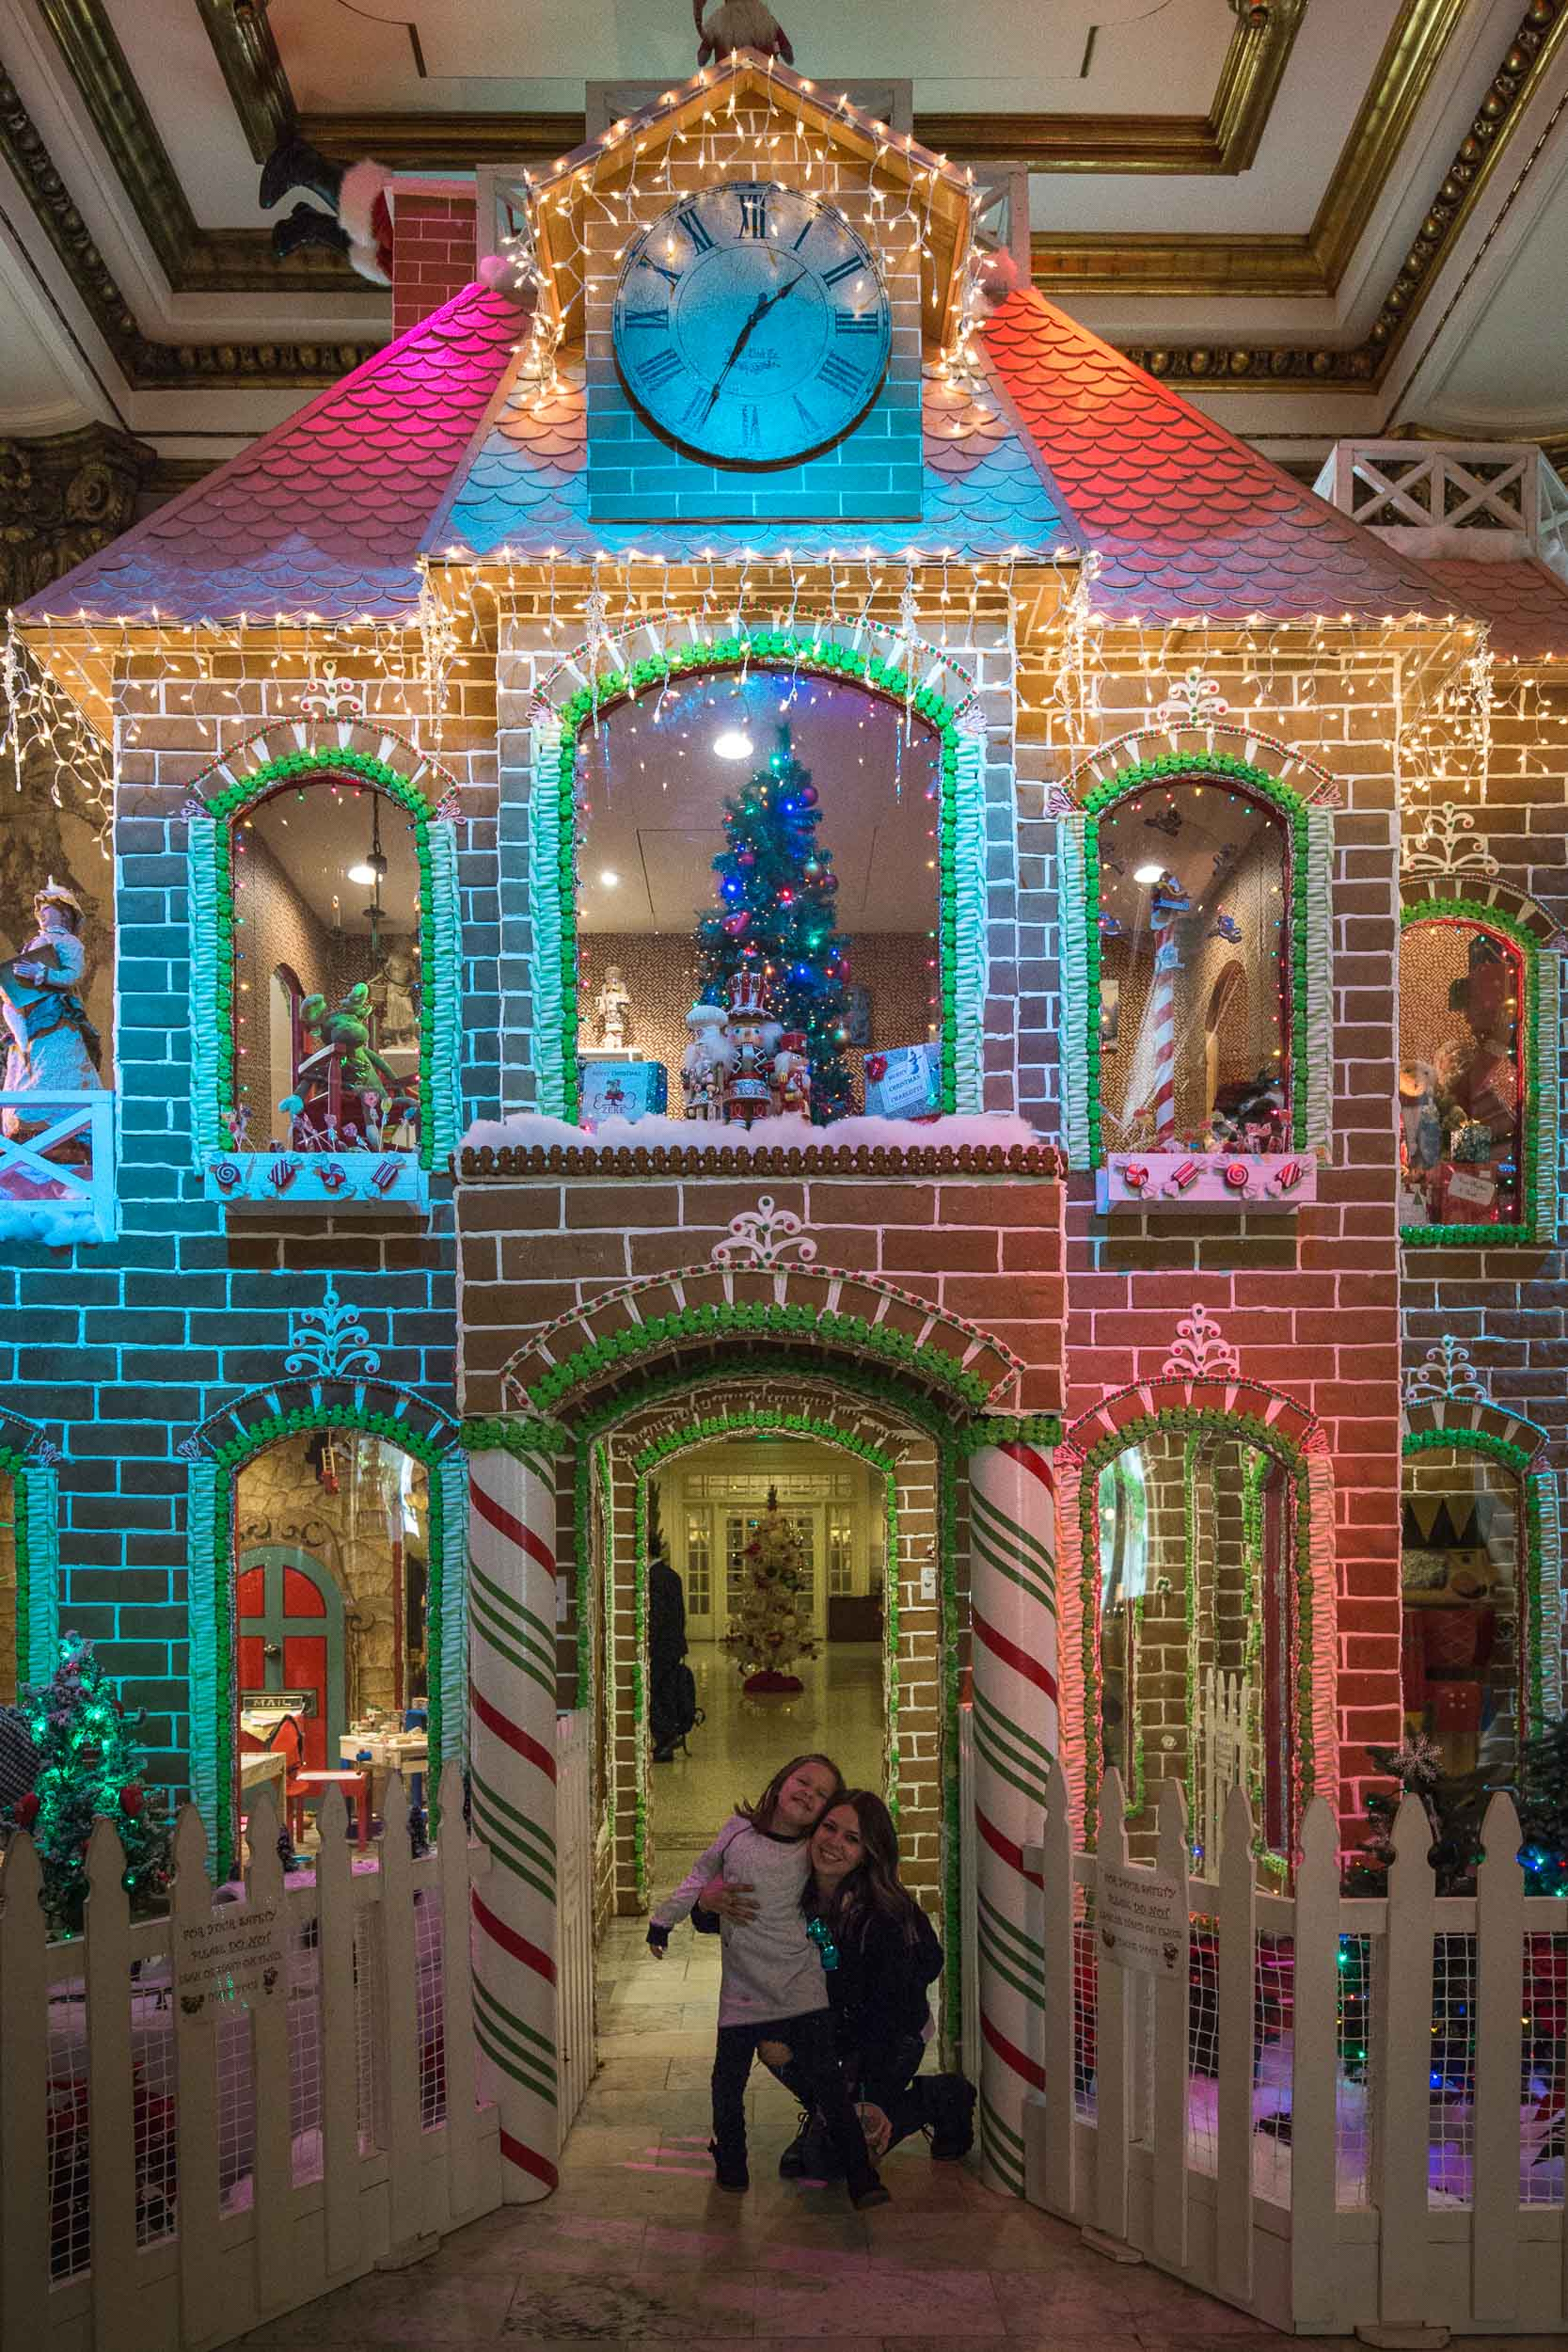 World famous, life size Gingerbread House at The Fairmont San Francisco